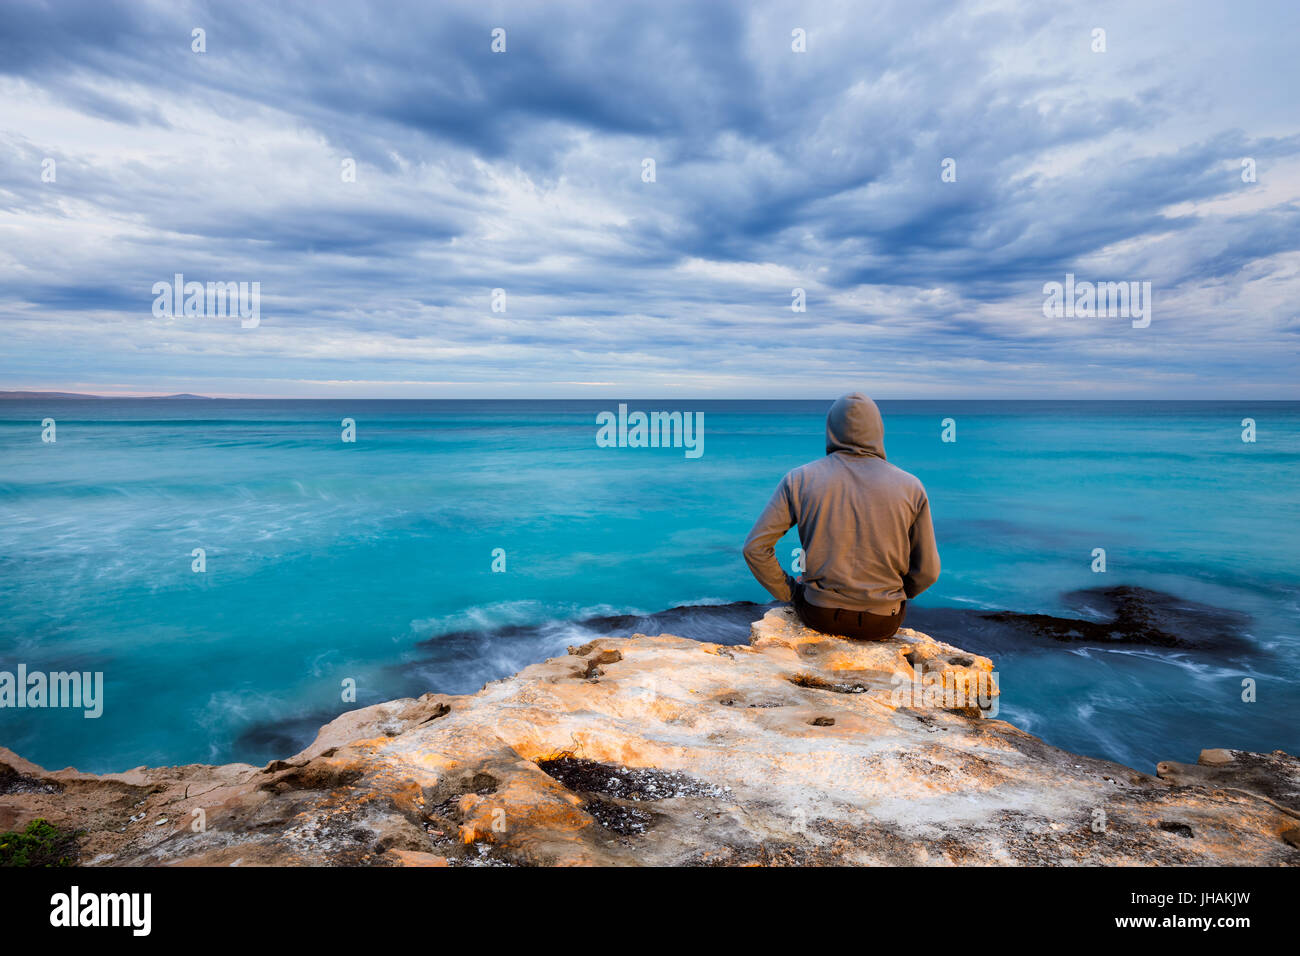 A man sits on the edge of a rugged limestone cliff and looks over a stormy ocean view in South Australia. - Stock Image